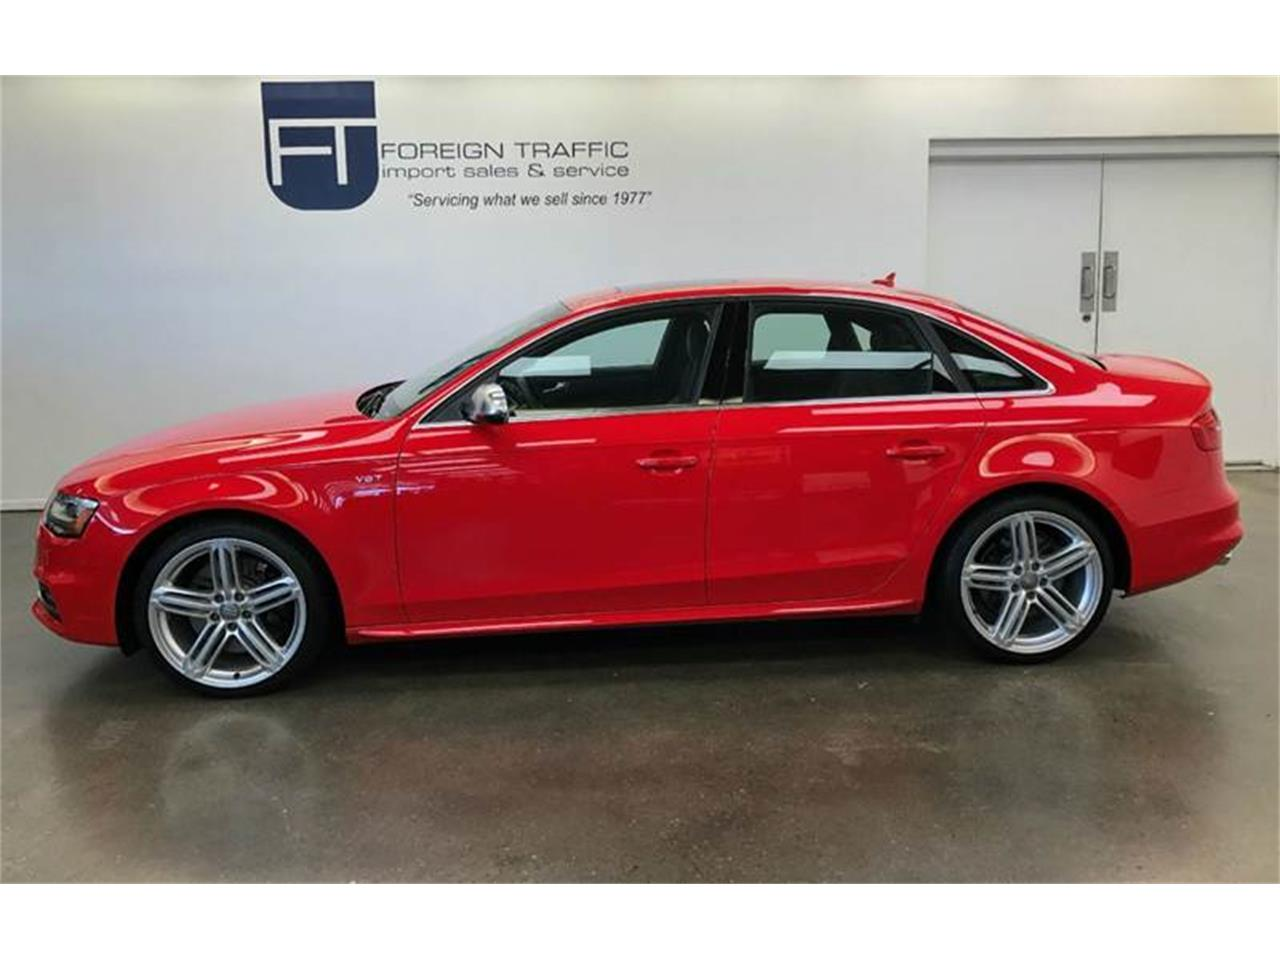 For Sale: 2016 Audi S4 in Allison Park, Pennsylvania